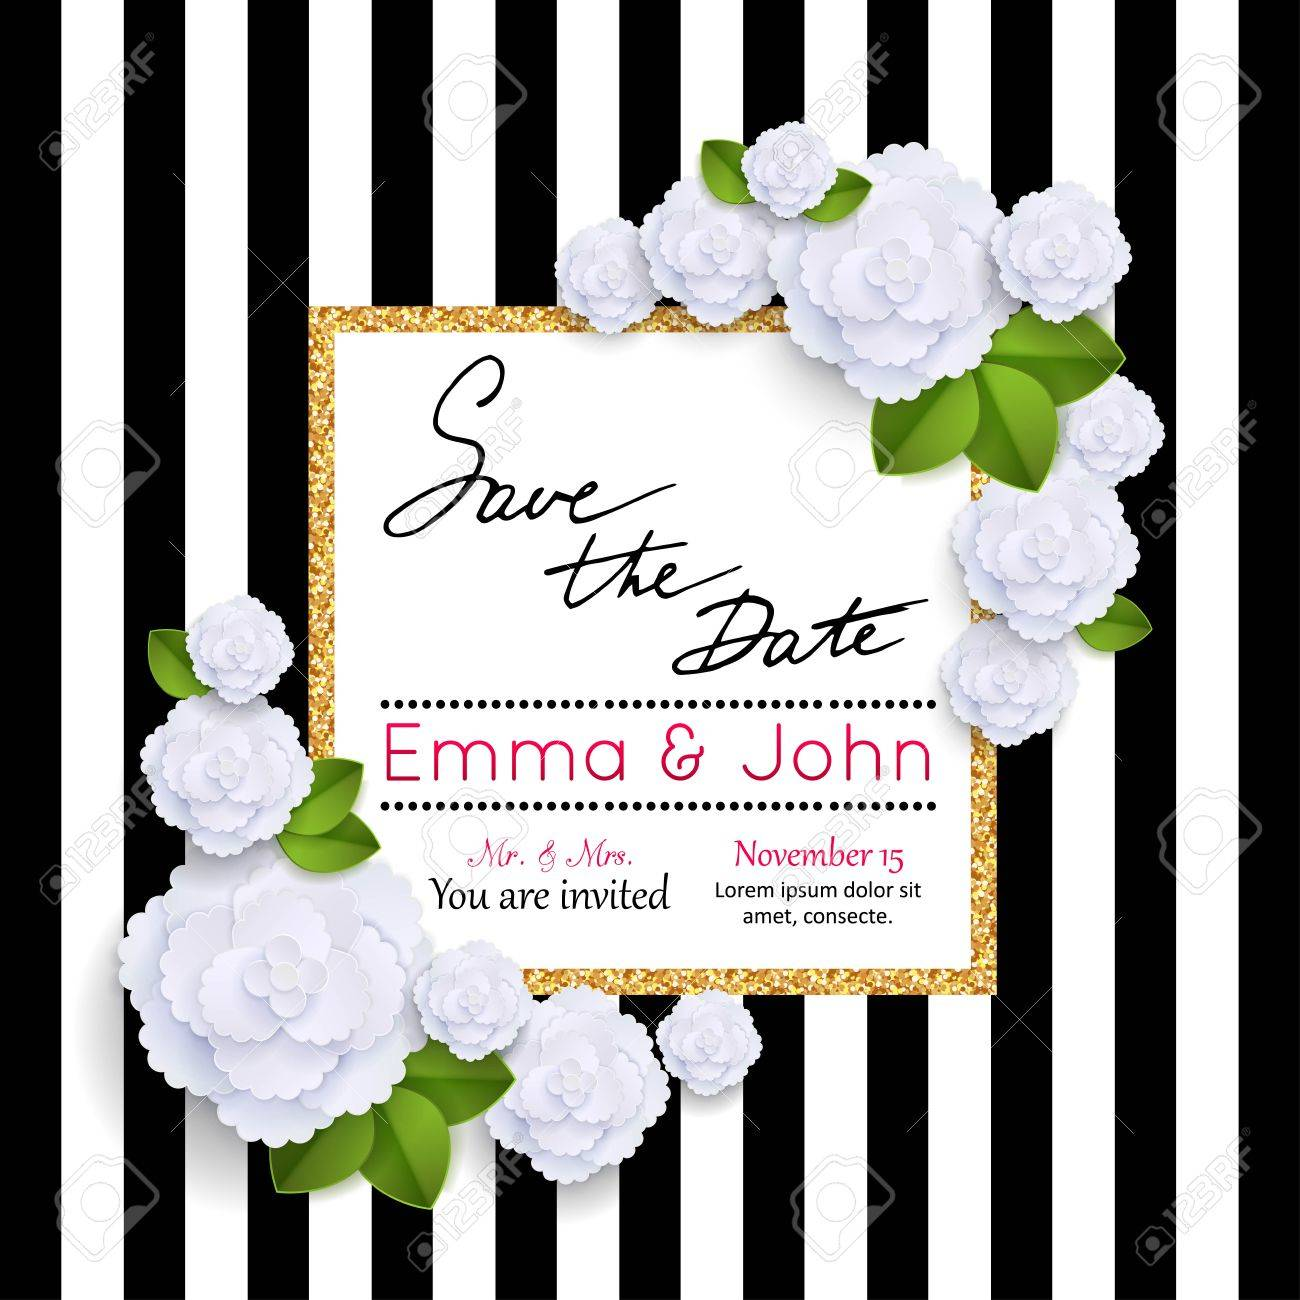 Save the date cards with paper flowers and gold frame. Marriage invitation card. Wedding invitation card. Vector illustration. - 55411167